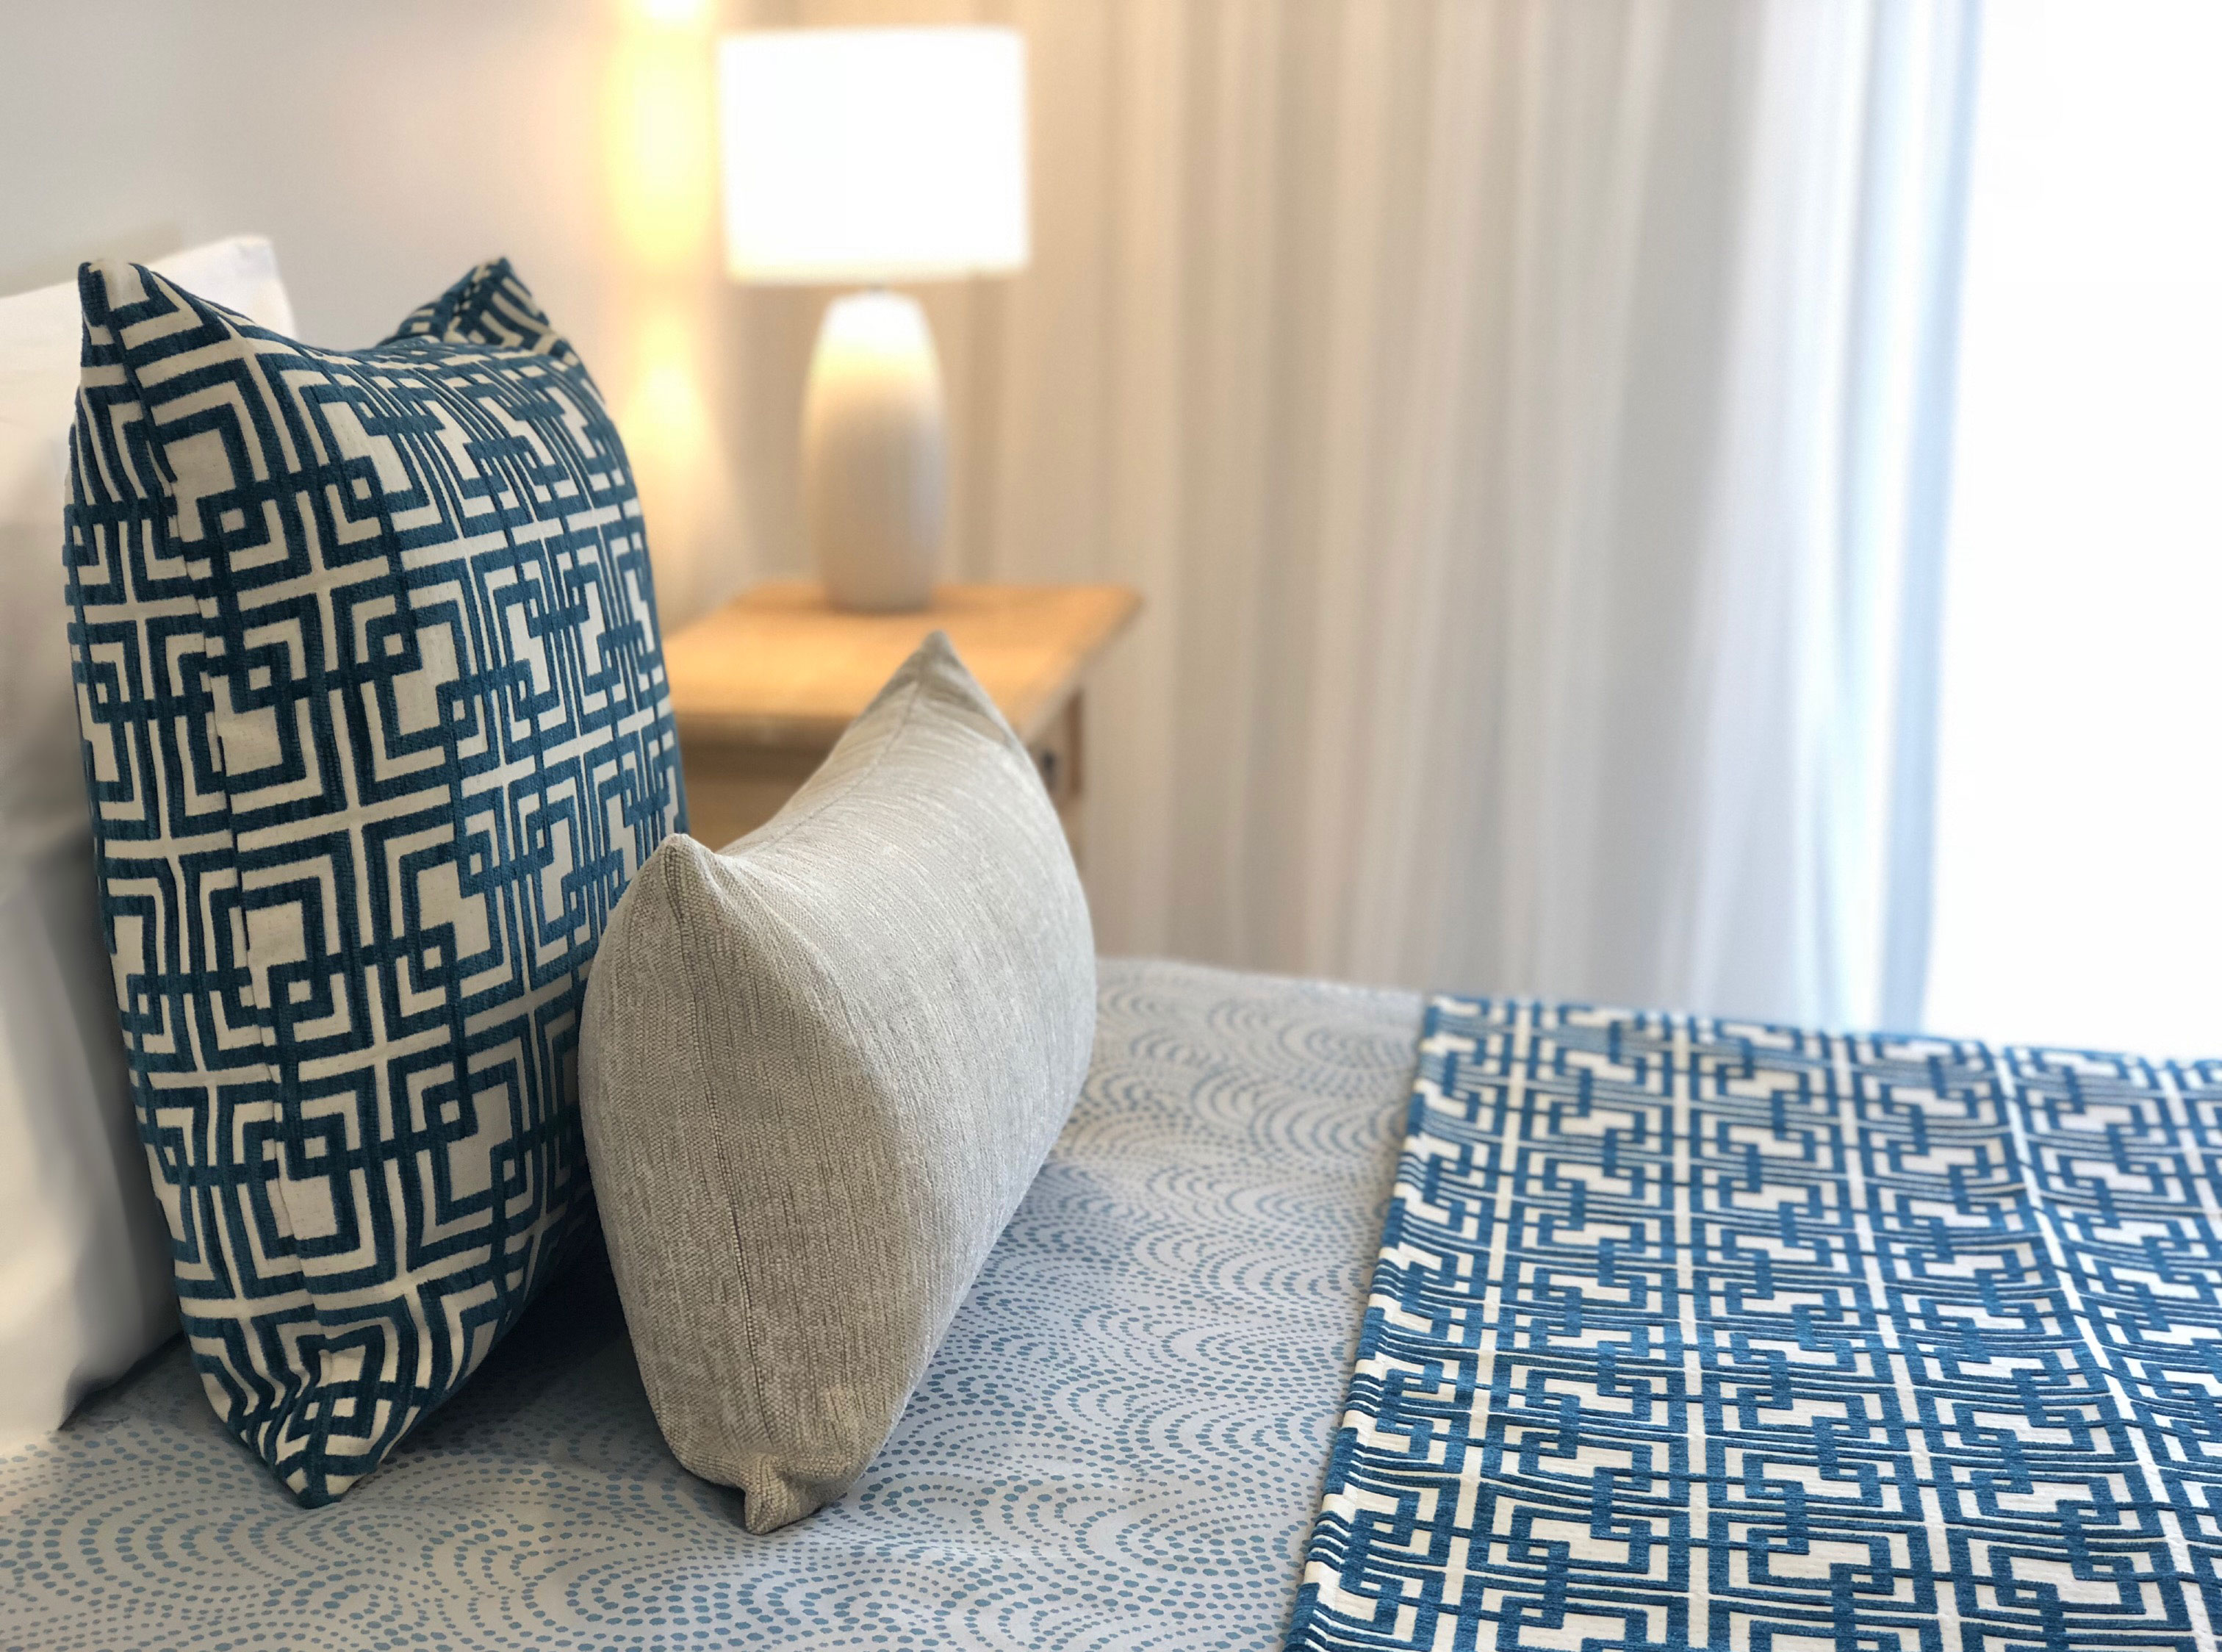 we-must-have-clean-pillows-in-accommodation